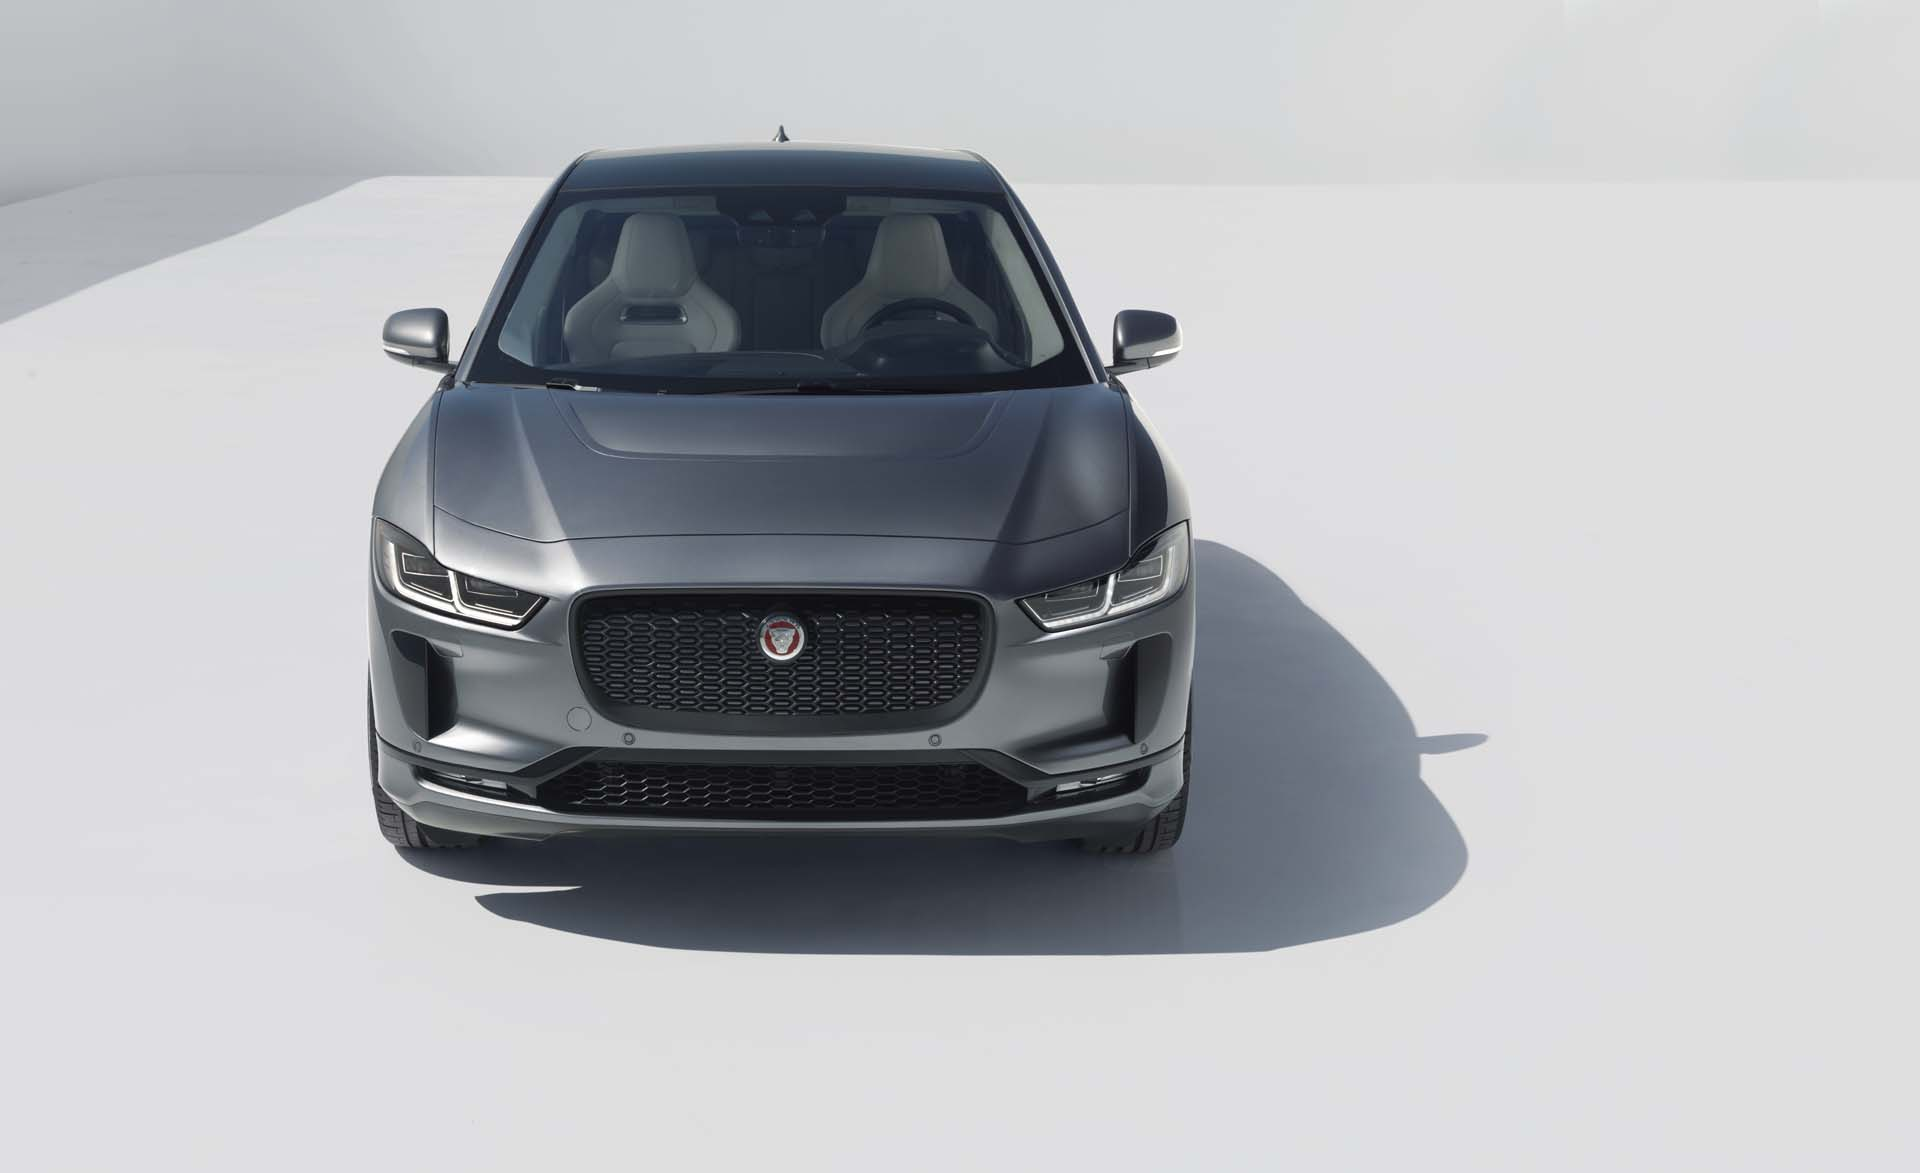 2019 jaguar i pace racing brakes fords new taxis whats new 2019 jaguar i pace racing brakes fords new taxis whats new the car connection fandeluxe Choice Image